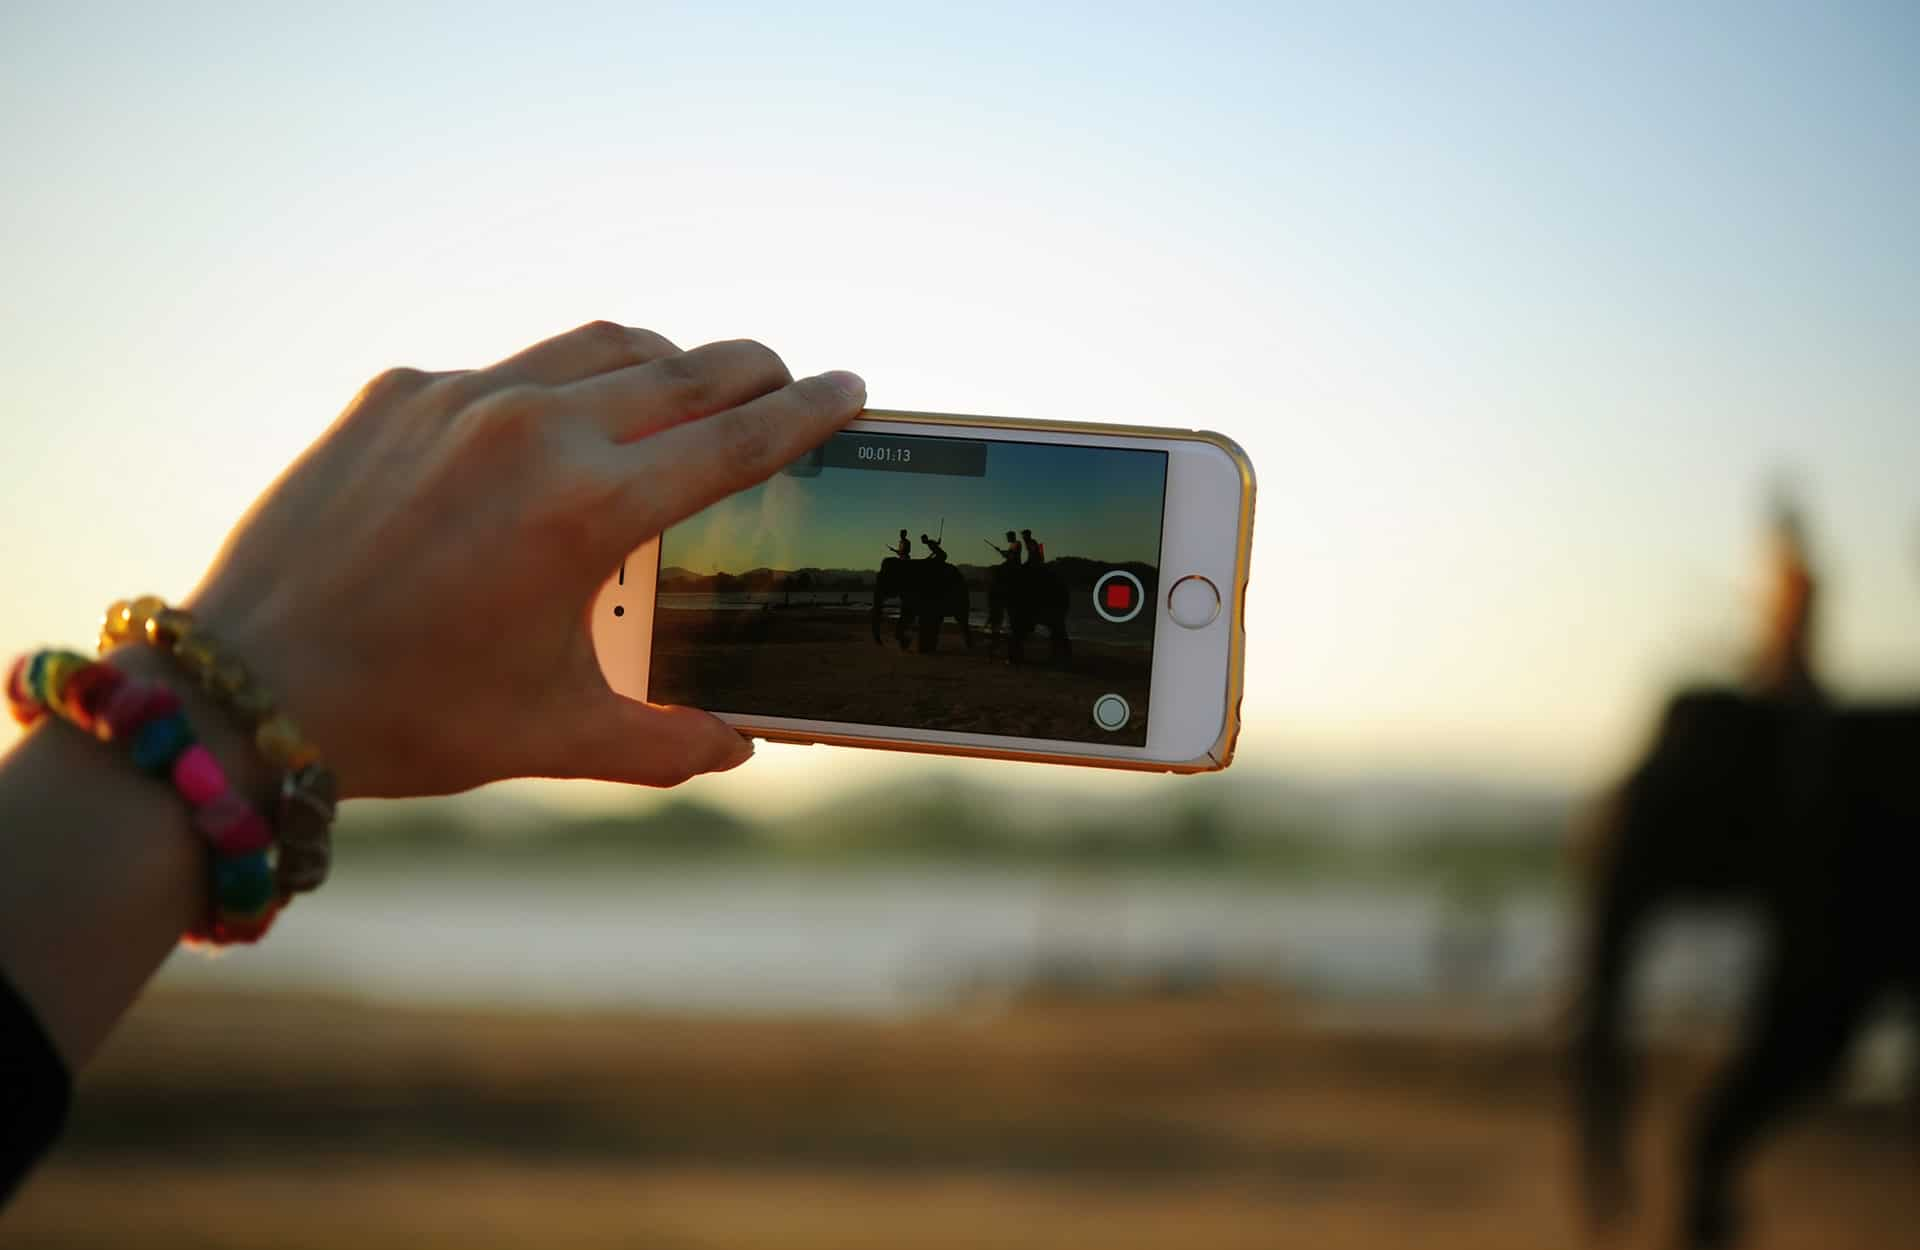 Make Your Instagram Videos Count with These Pro Tips